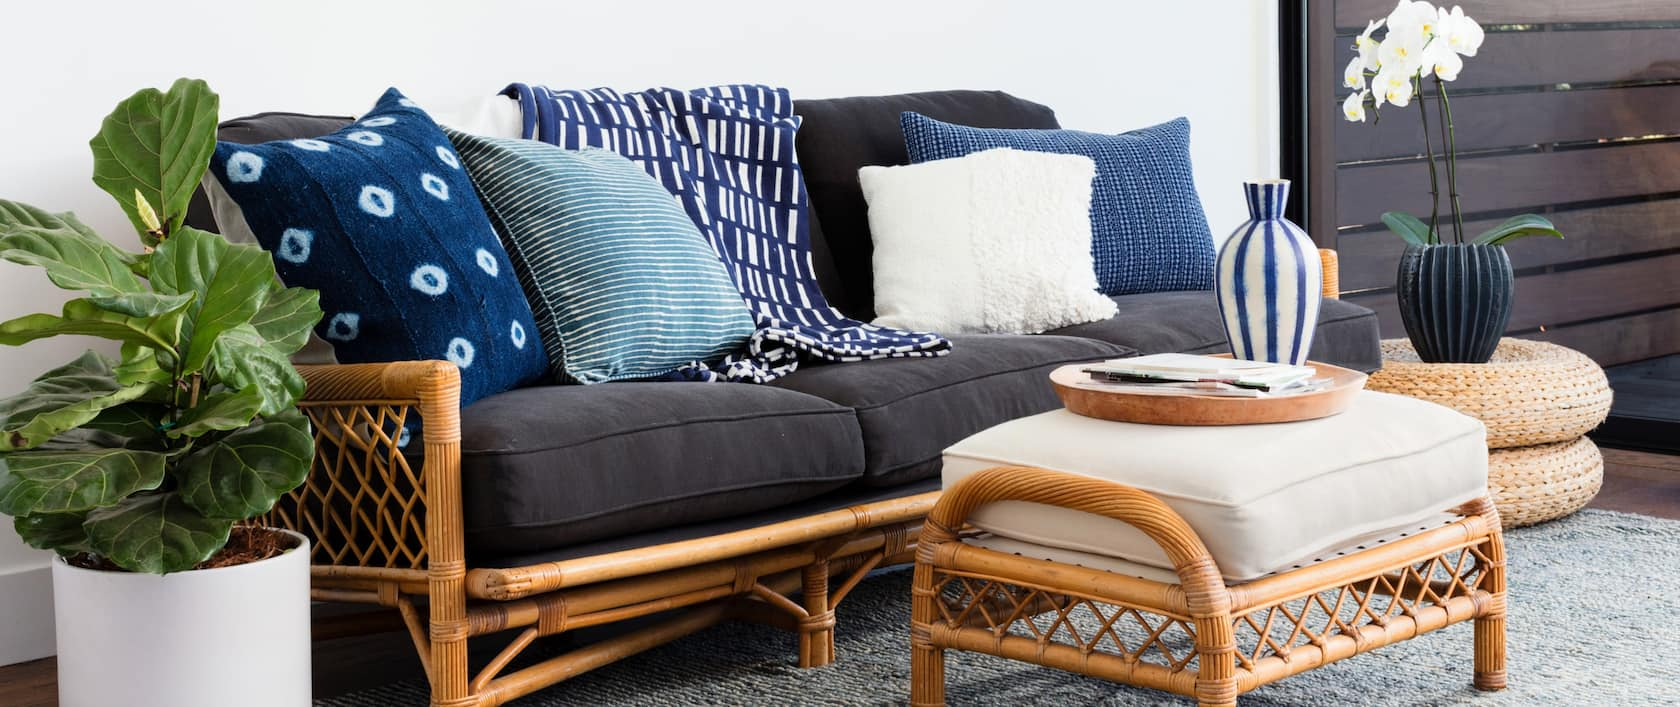 Vacation rentals in Yanam